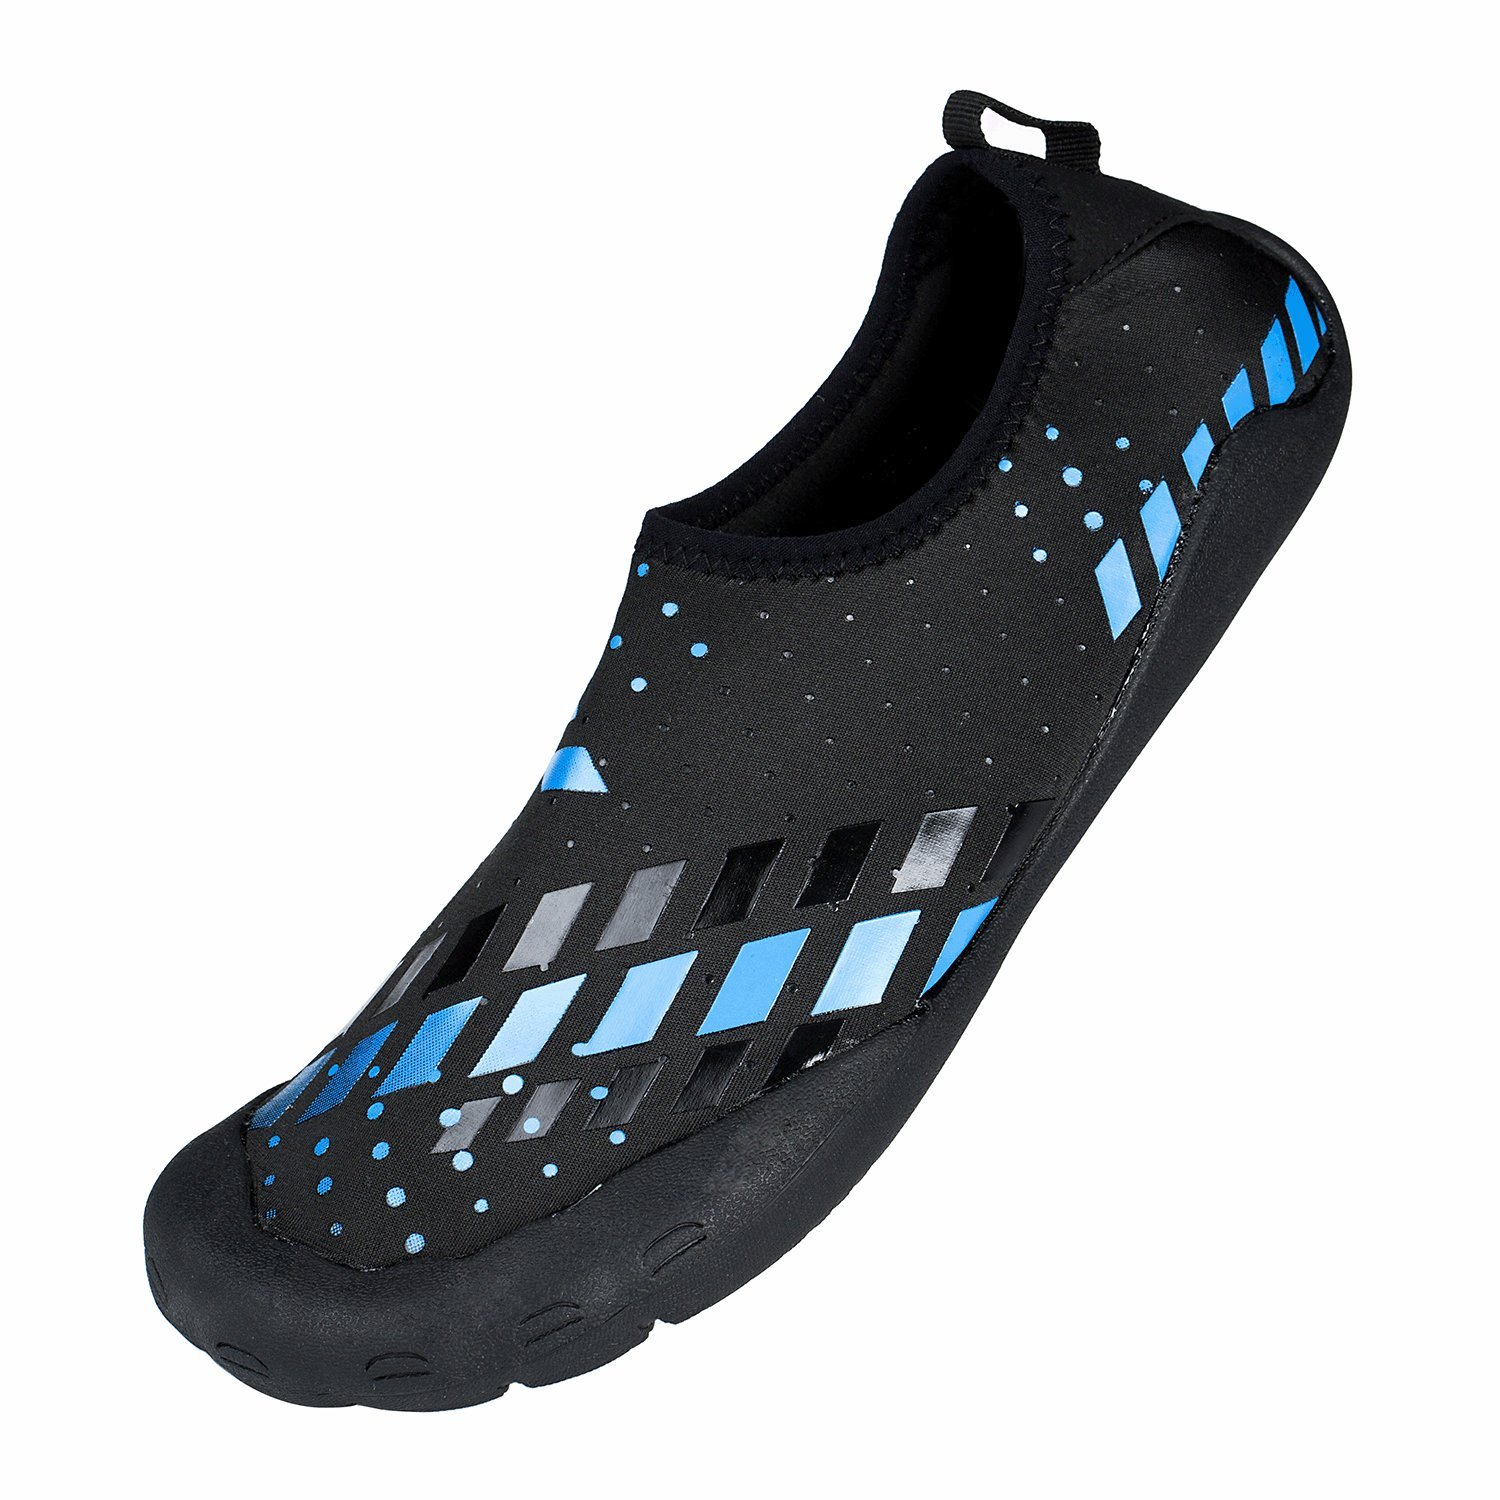 Water Shoes Quick Dry Aqua Water Shoes Beach Walking Swming Yoga Exercise